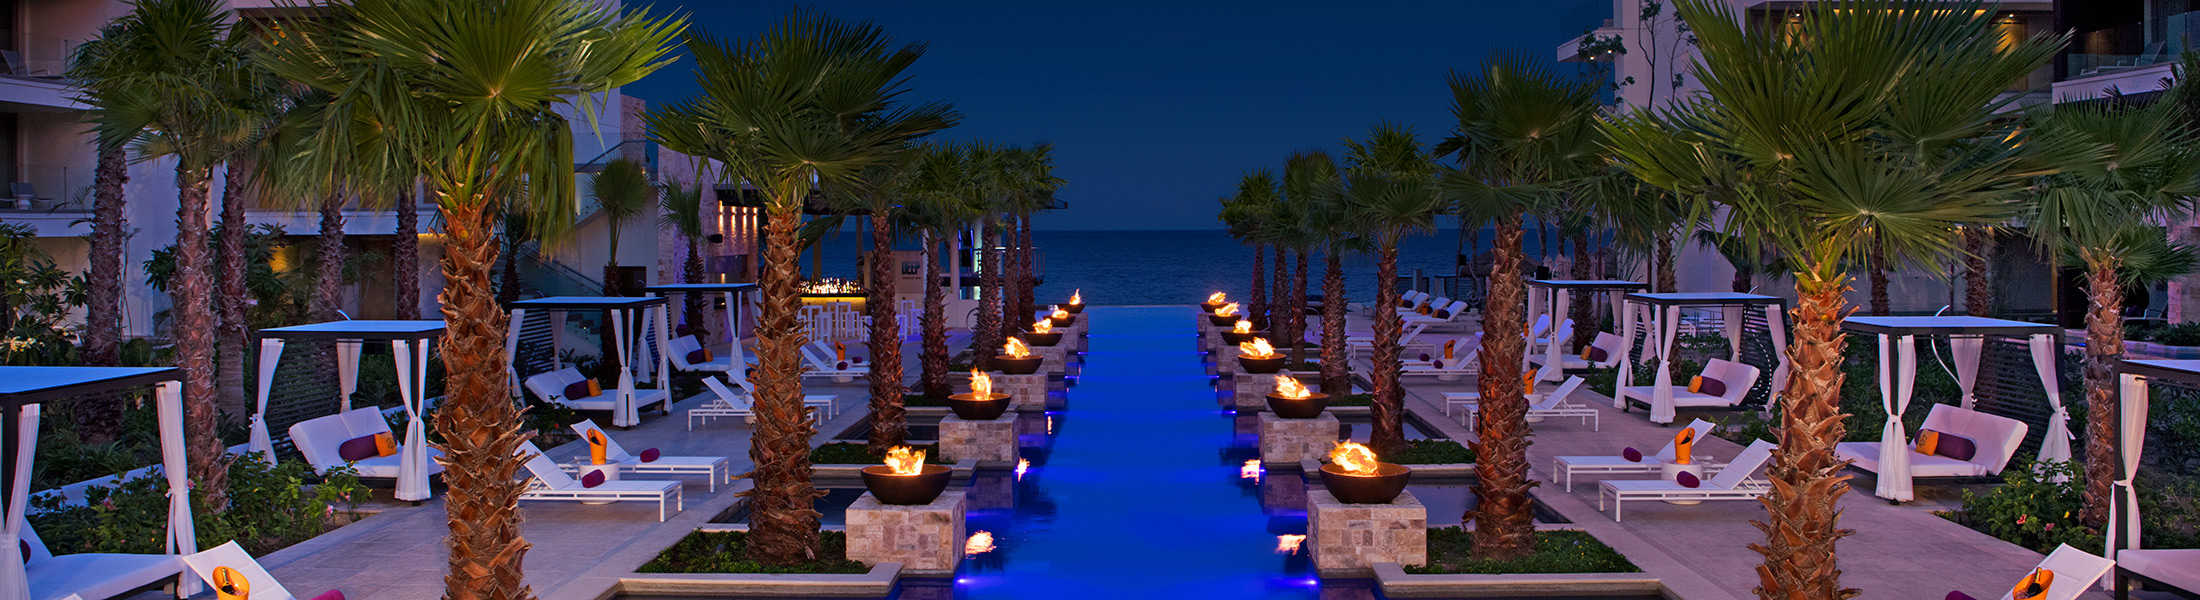 The freestyle pool at night at Breathless Riviera Cancun